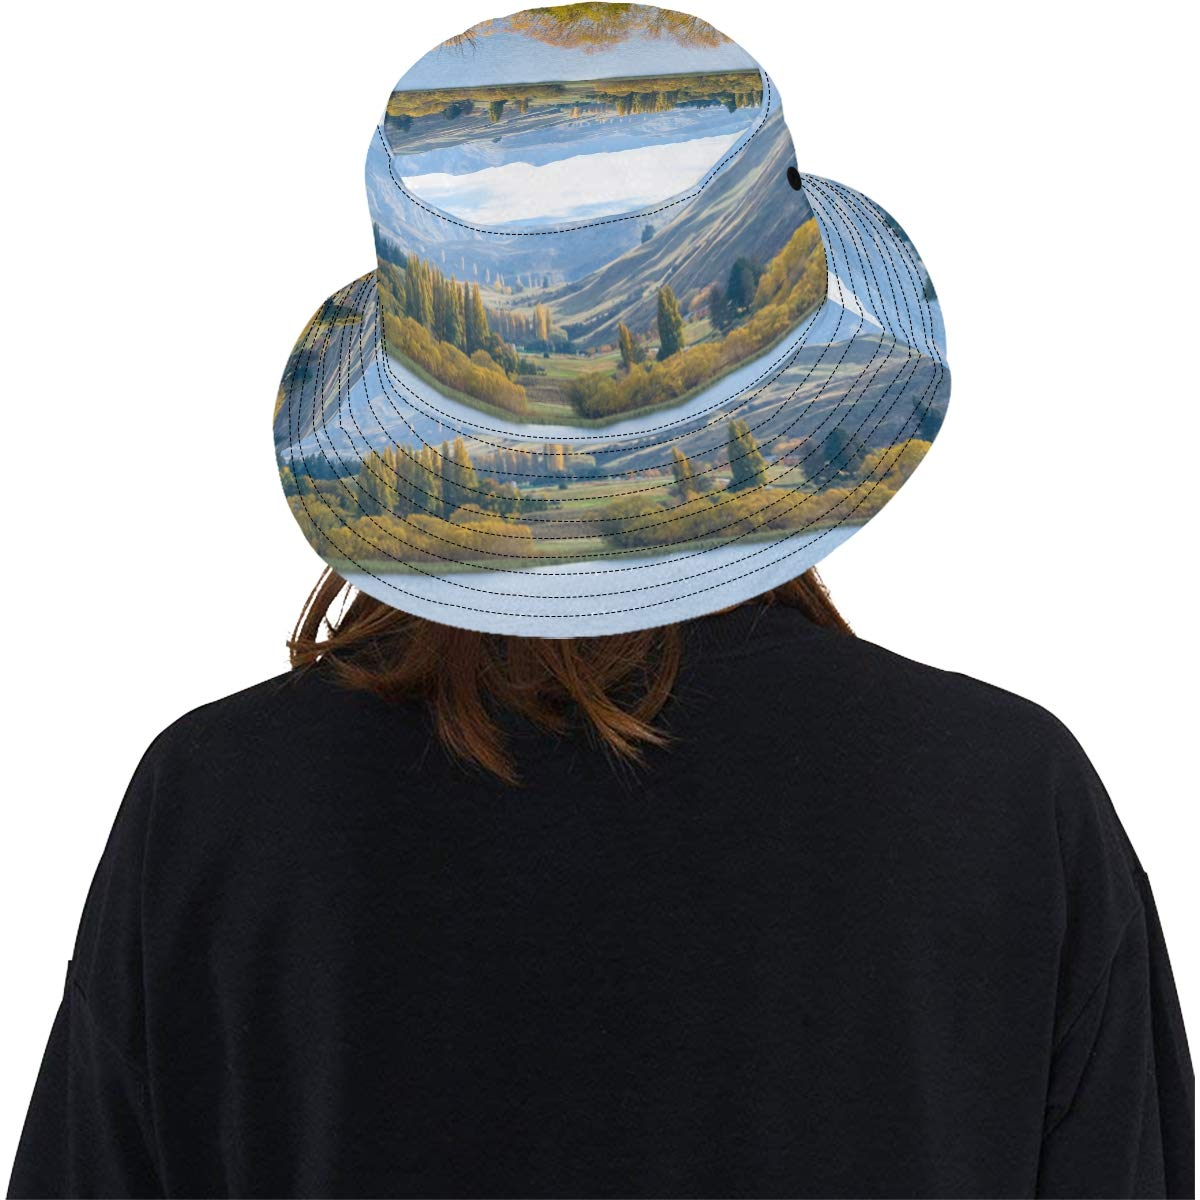 Beautiful New South Island New Summer Unisex Cotton Fashion Fishing Sun Bucket Hats for Kid Teens Women and Men with Customize Top Packable Fisherman Cap for Outdoor Travel